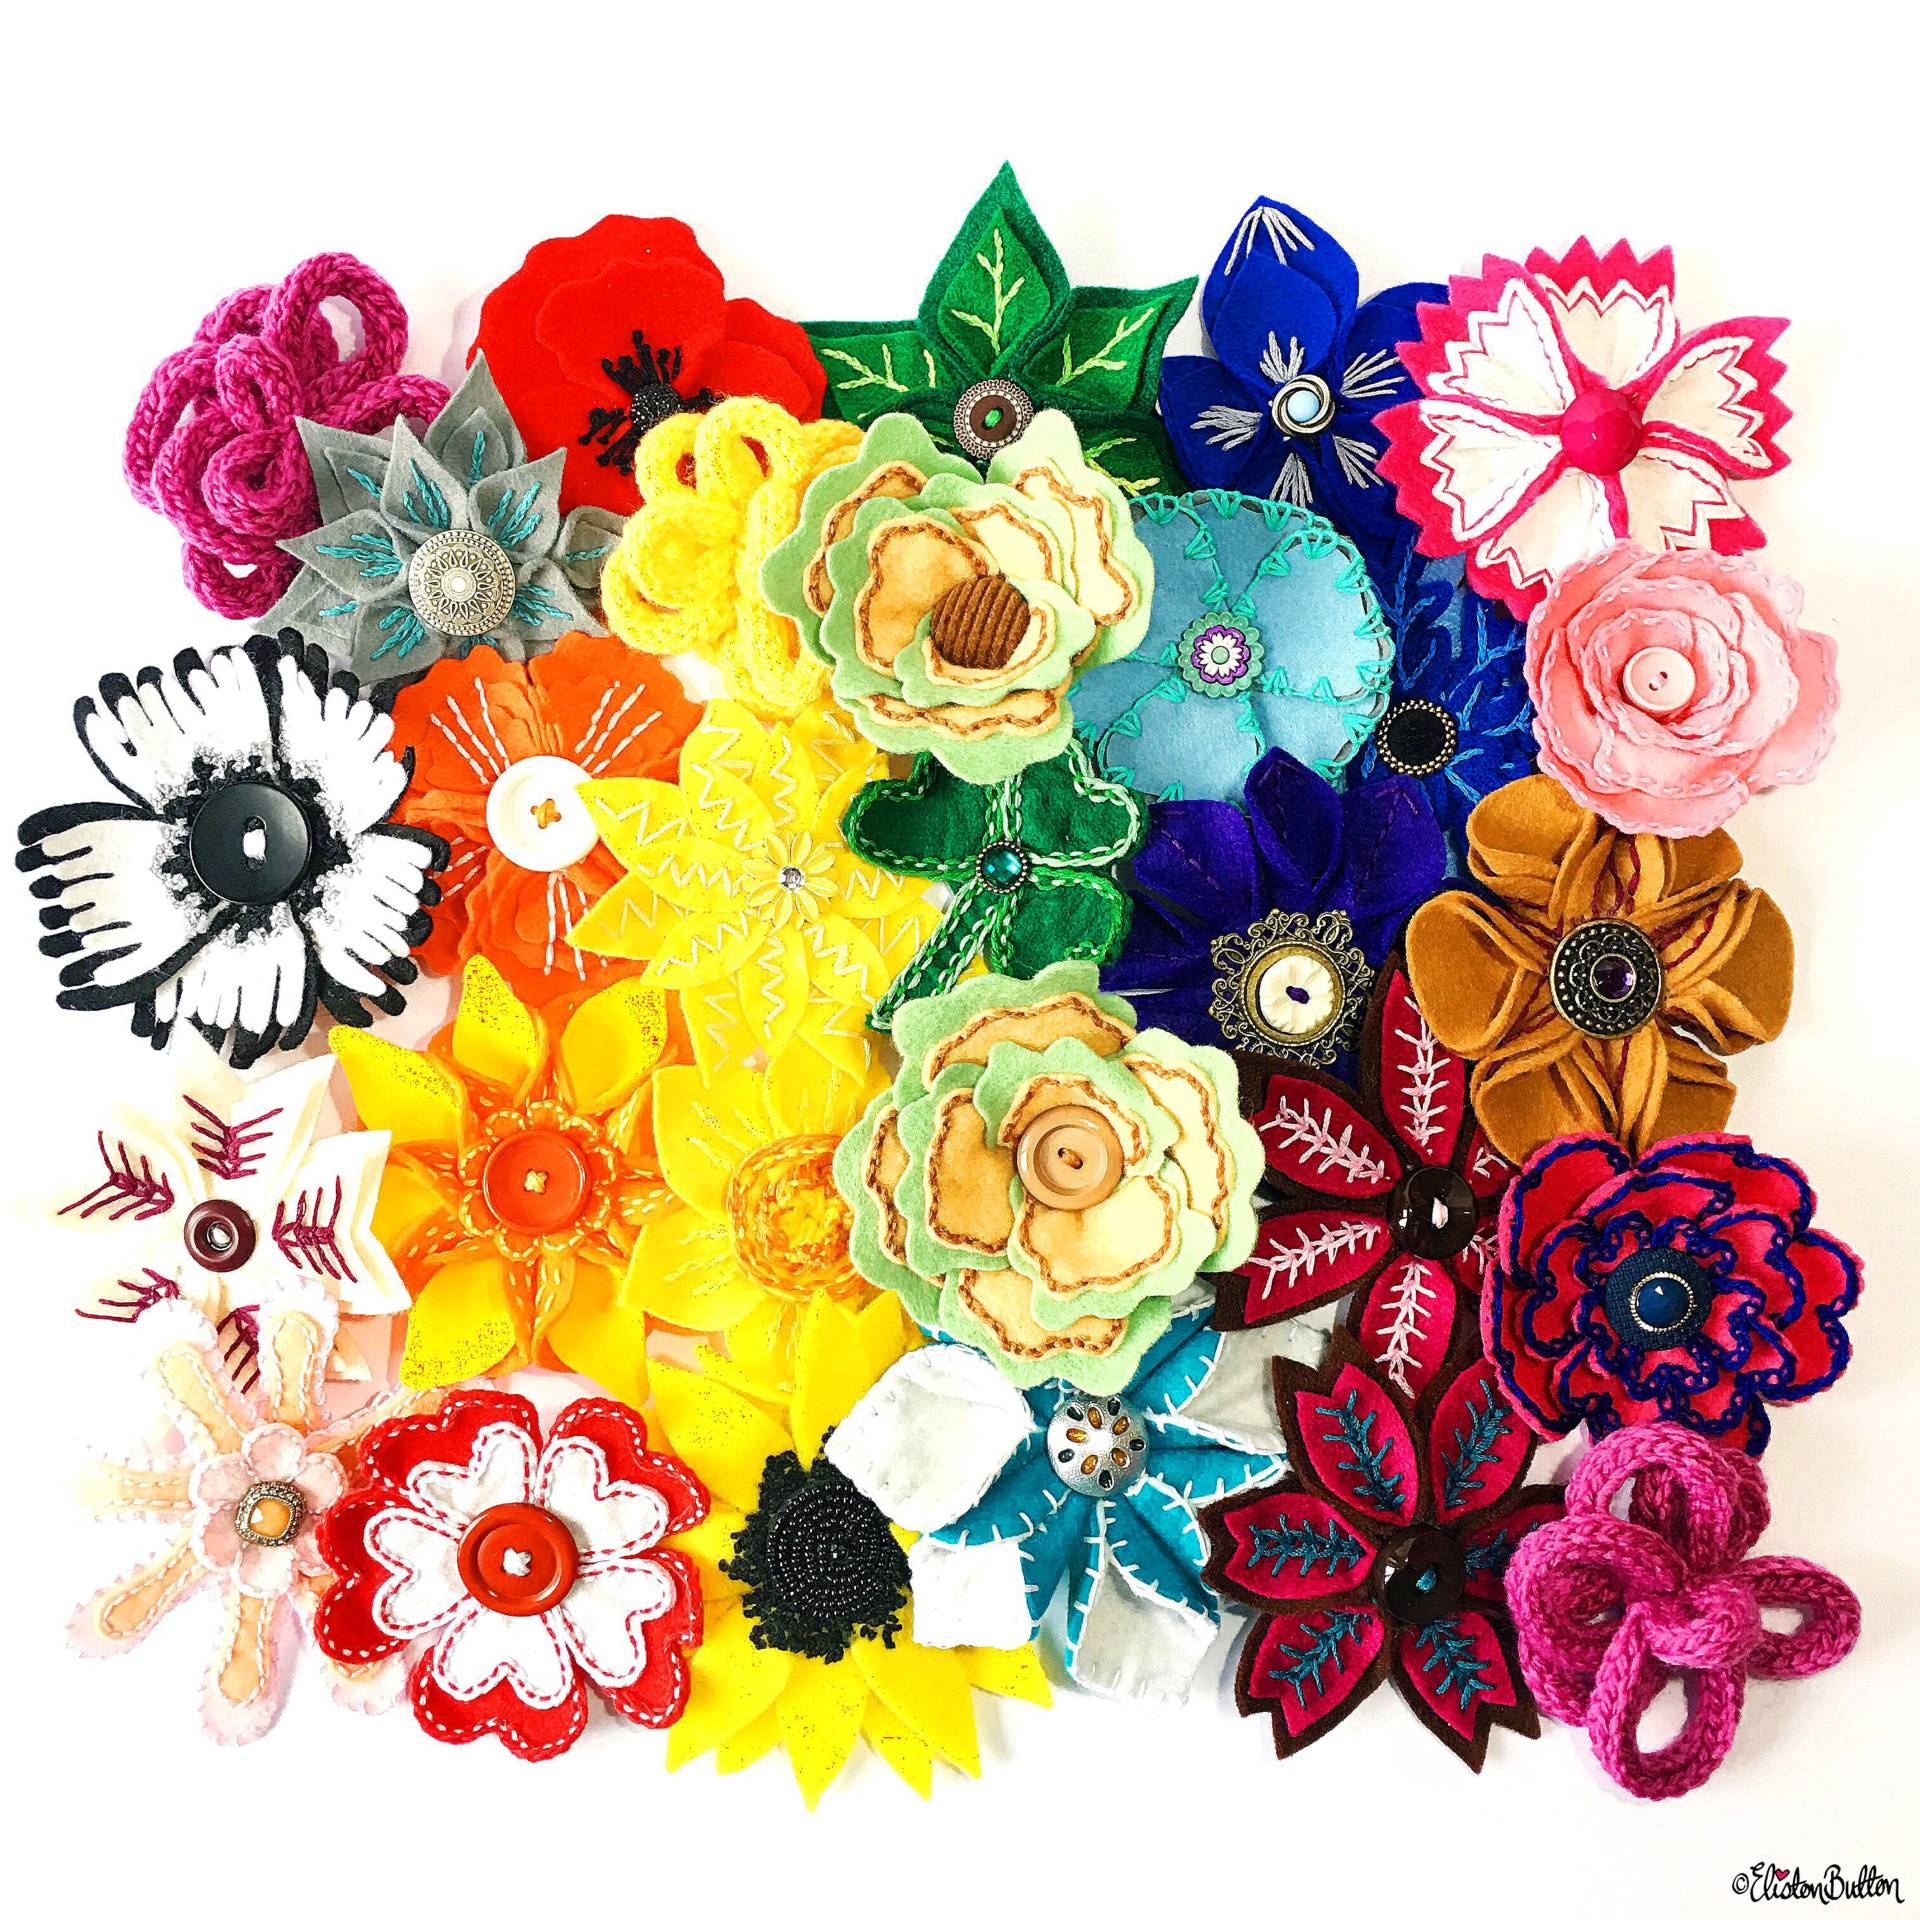 Bright and Colourful Embroidered Felt Flower Brooch Collection by Eliston Button - Meet the Maker Week 2017 at www.elistonbutton.com - Eliston Button - That Crafty Kid – Art, Design, Craft & Adventure.